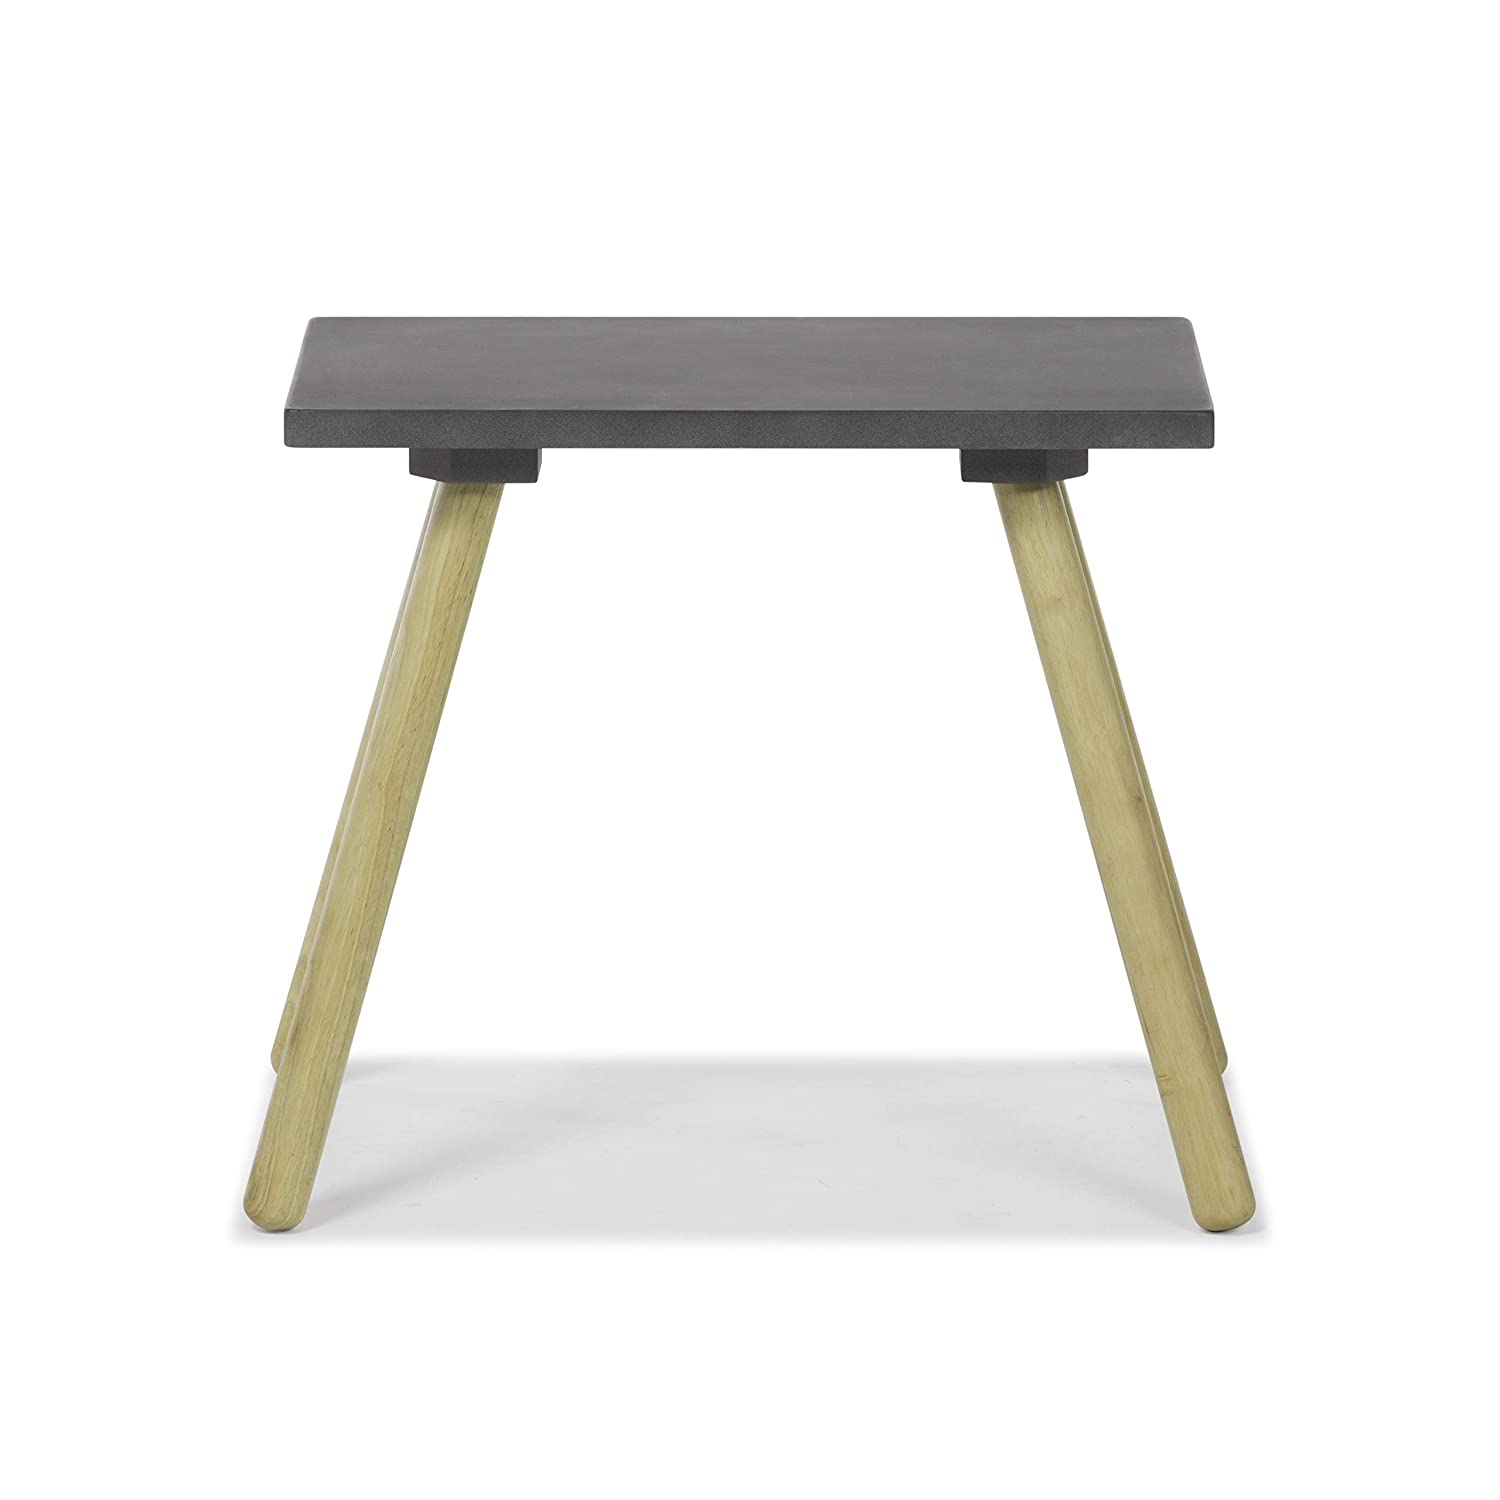 Ansel Mid-Century Modern Faux Cement Finish Accent Table use as End, Side, Bedside Table